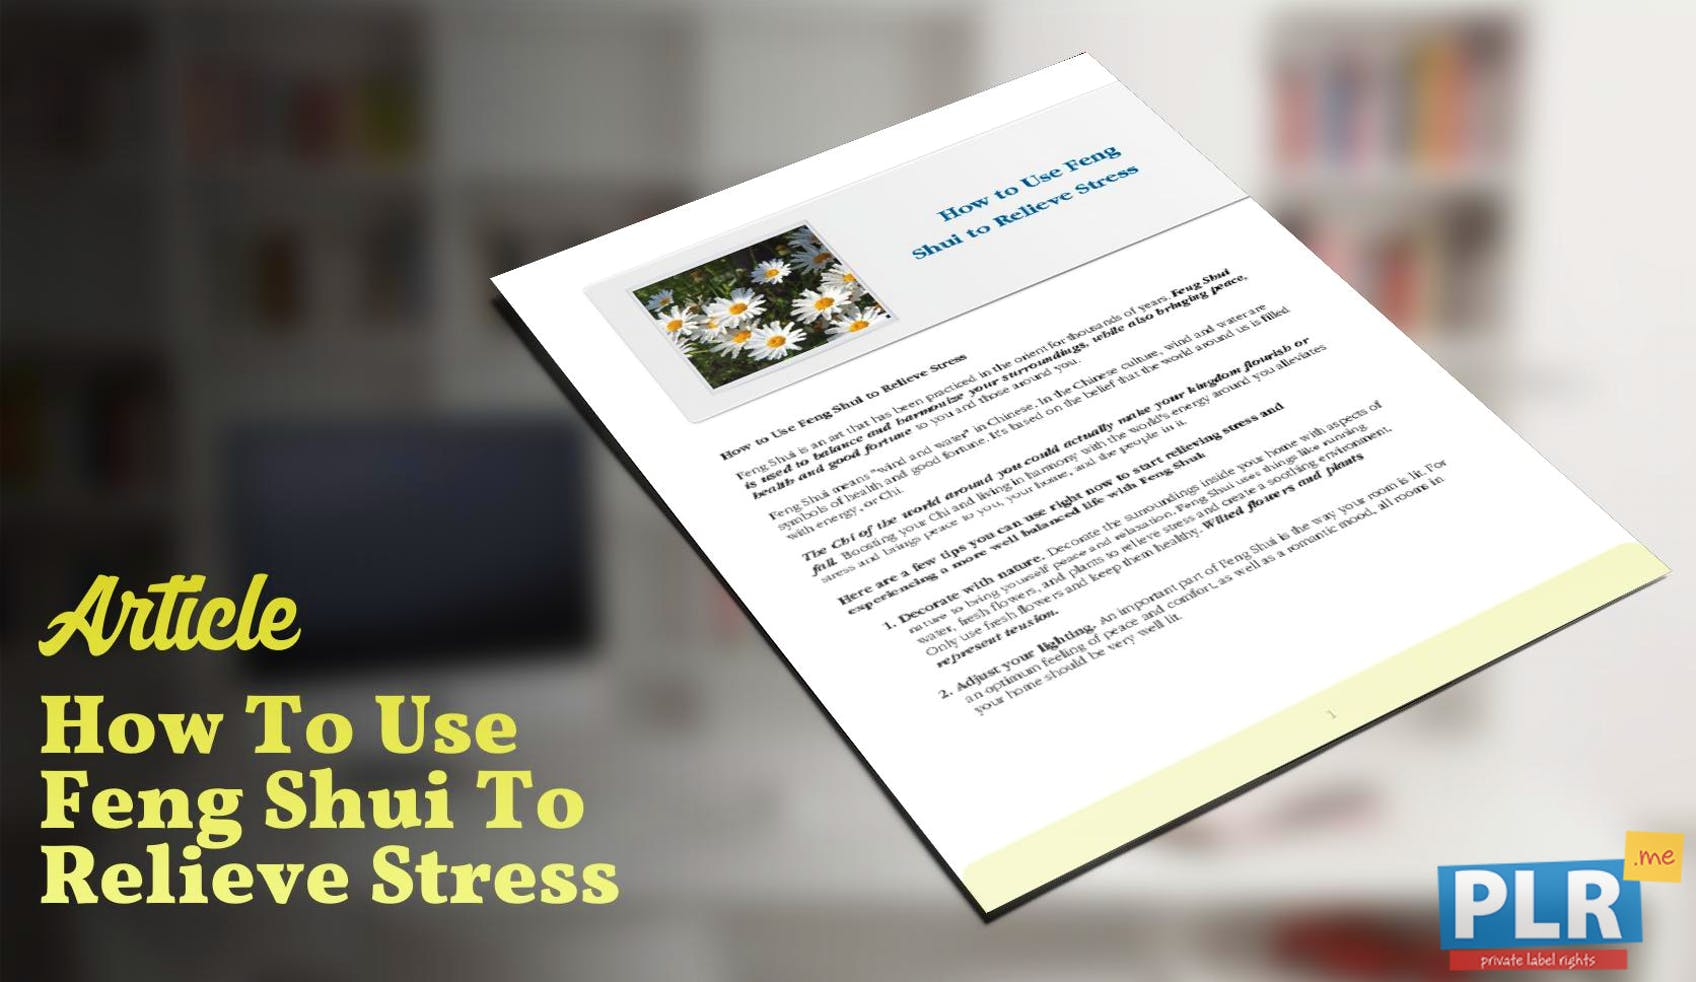 How To Use Feng Shui To Relieve Stress